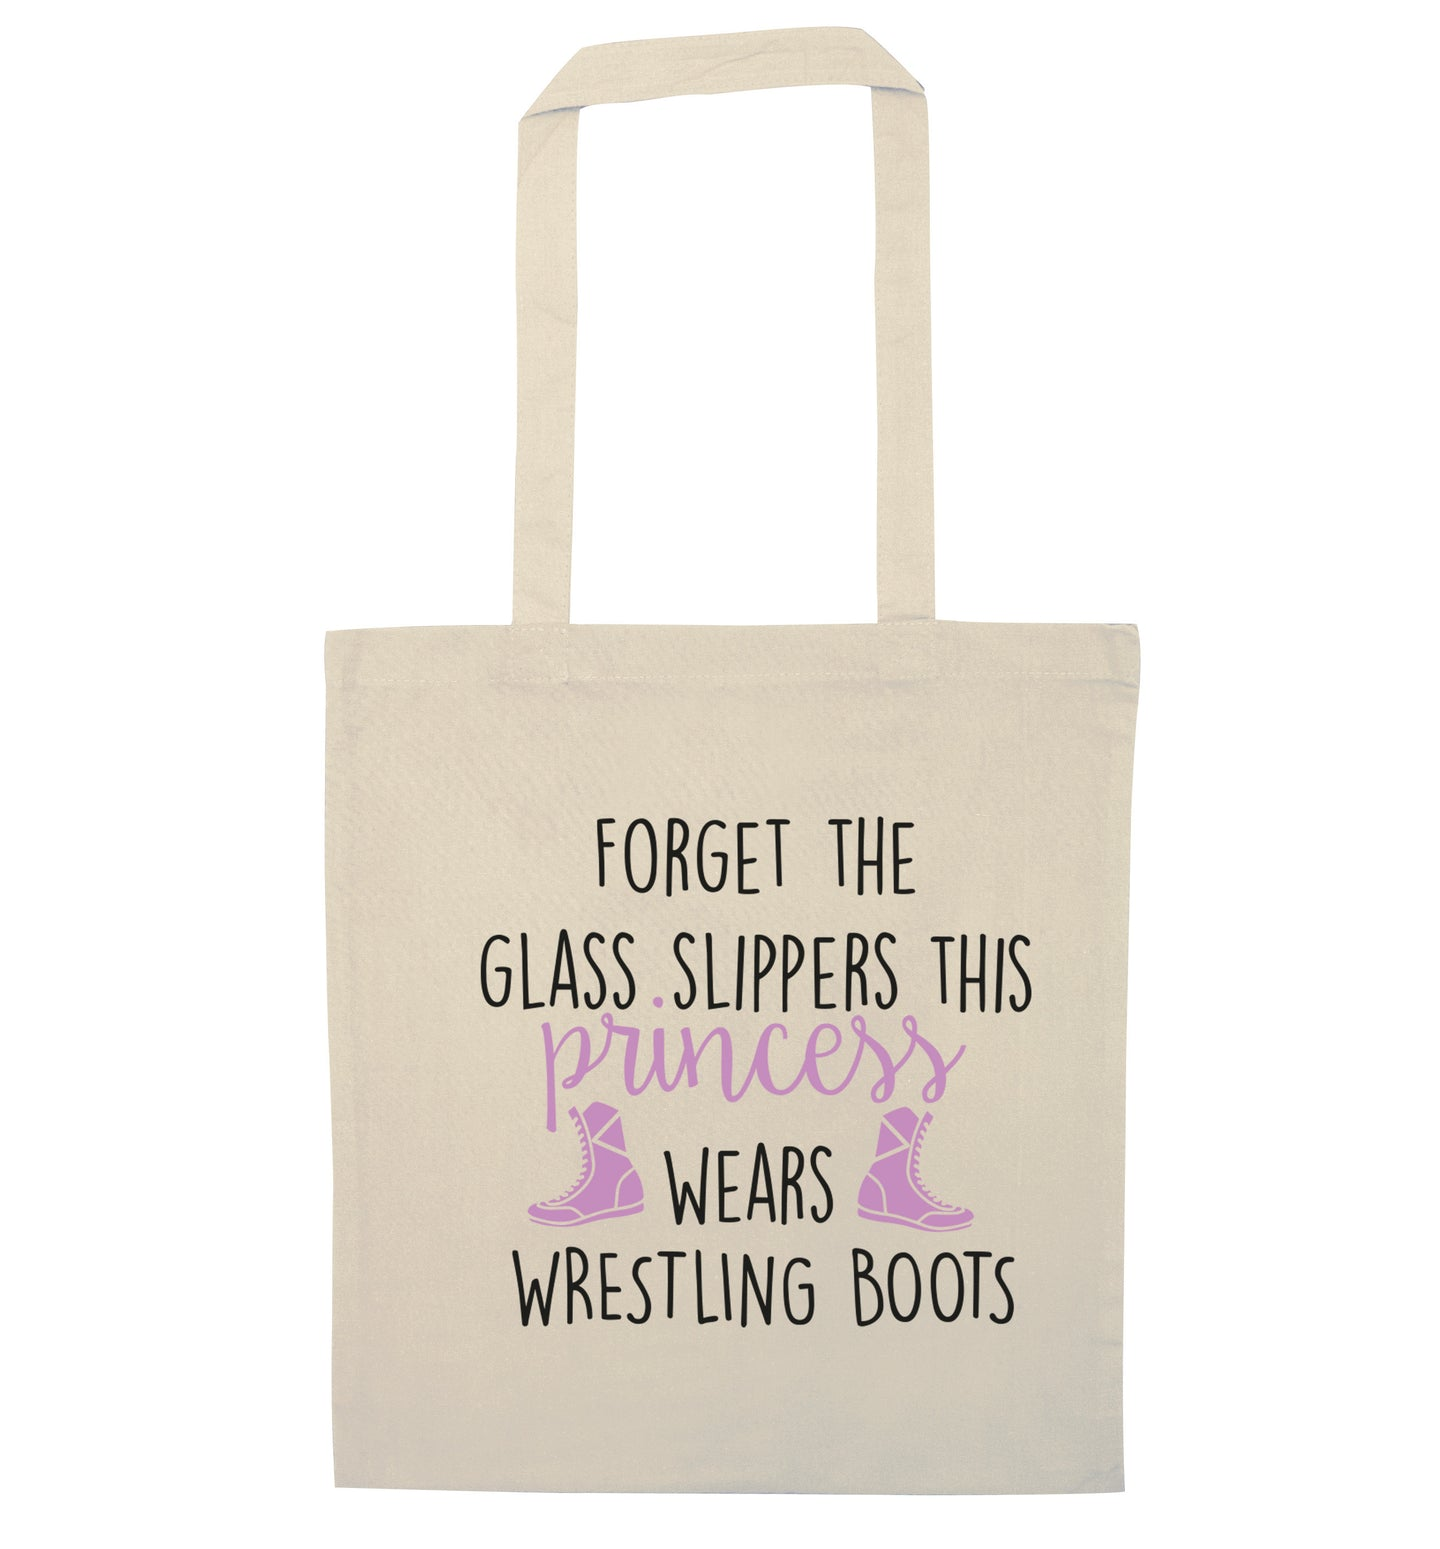 Forget the glass slippers this princess wears wrestling boots natural tote bag